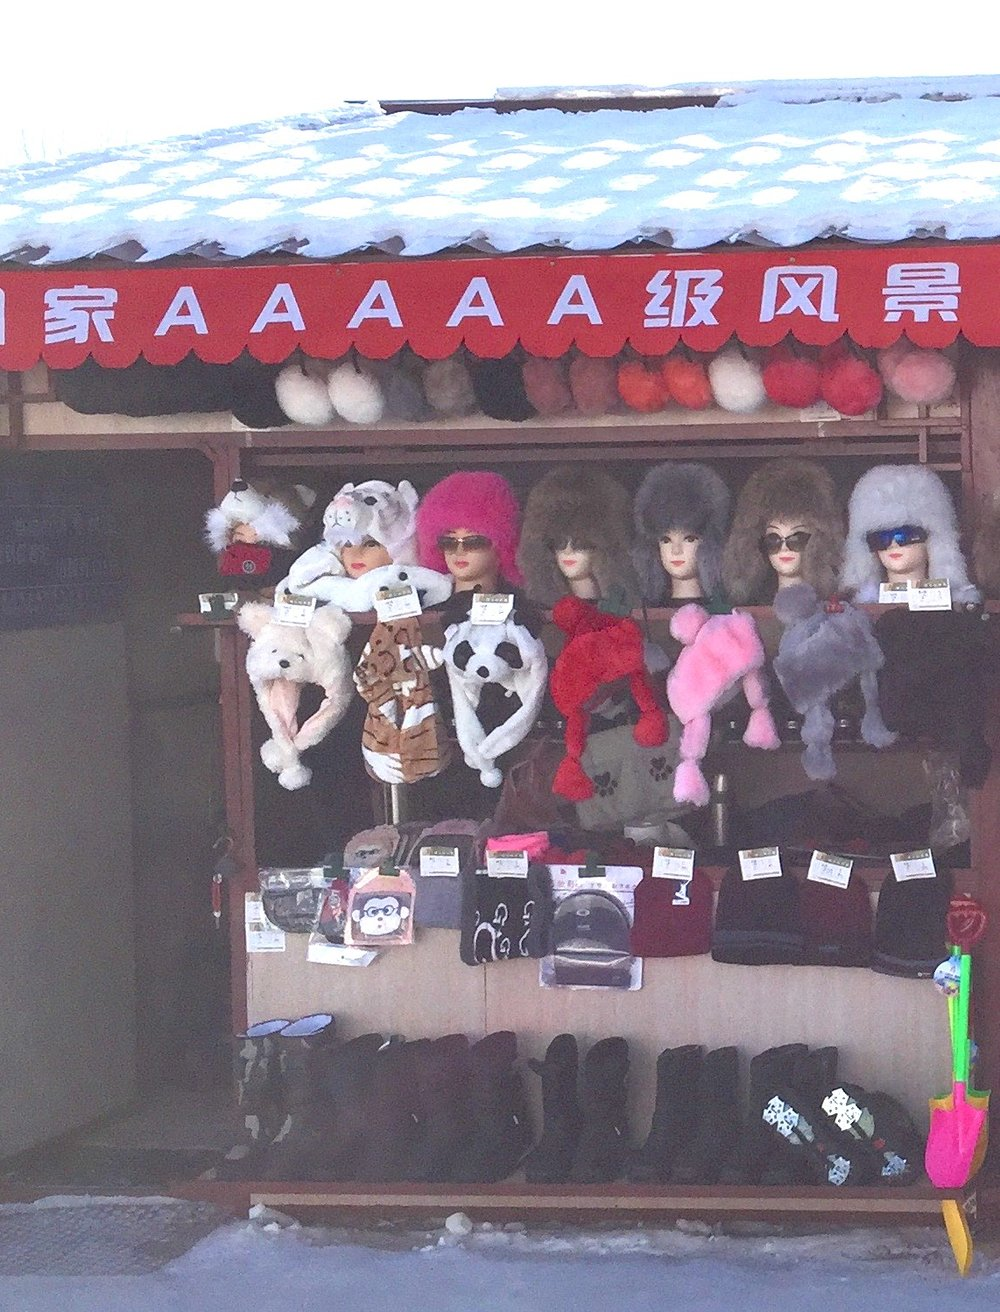 Head gear for sale at the Ice Festival in Harbin